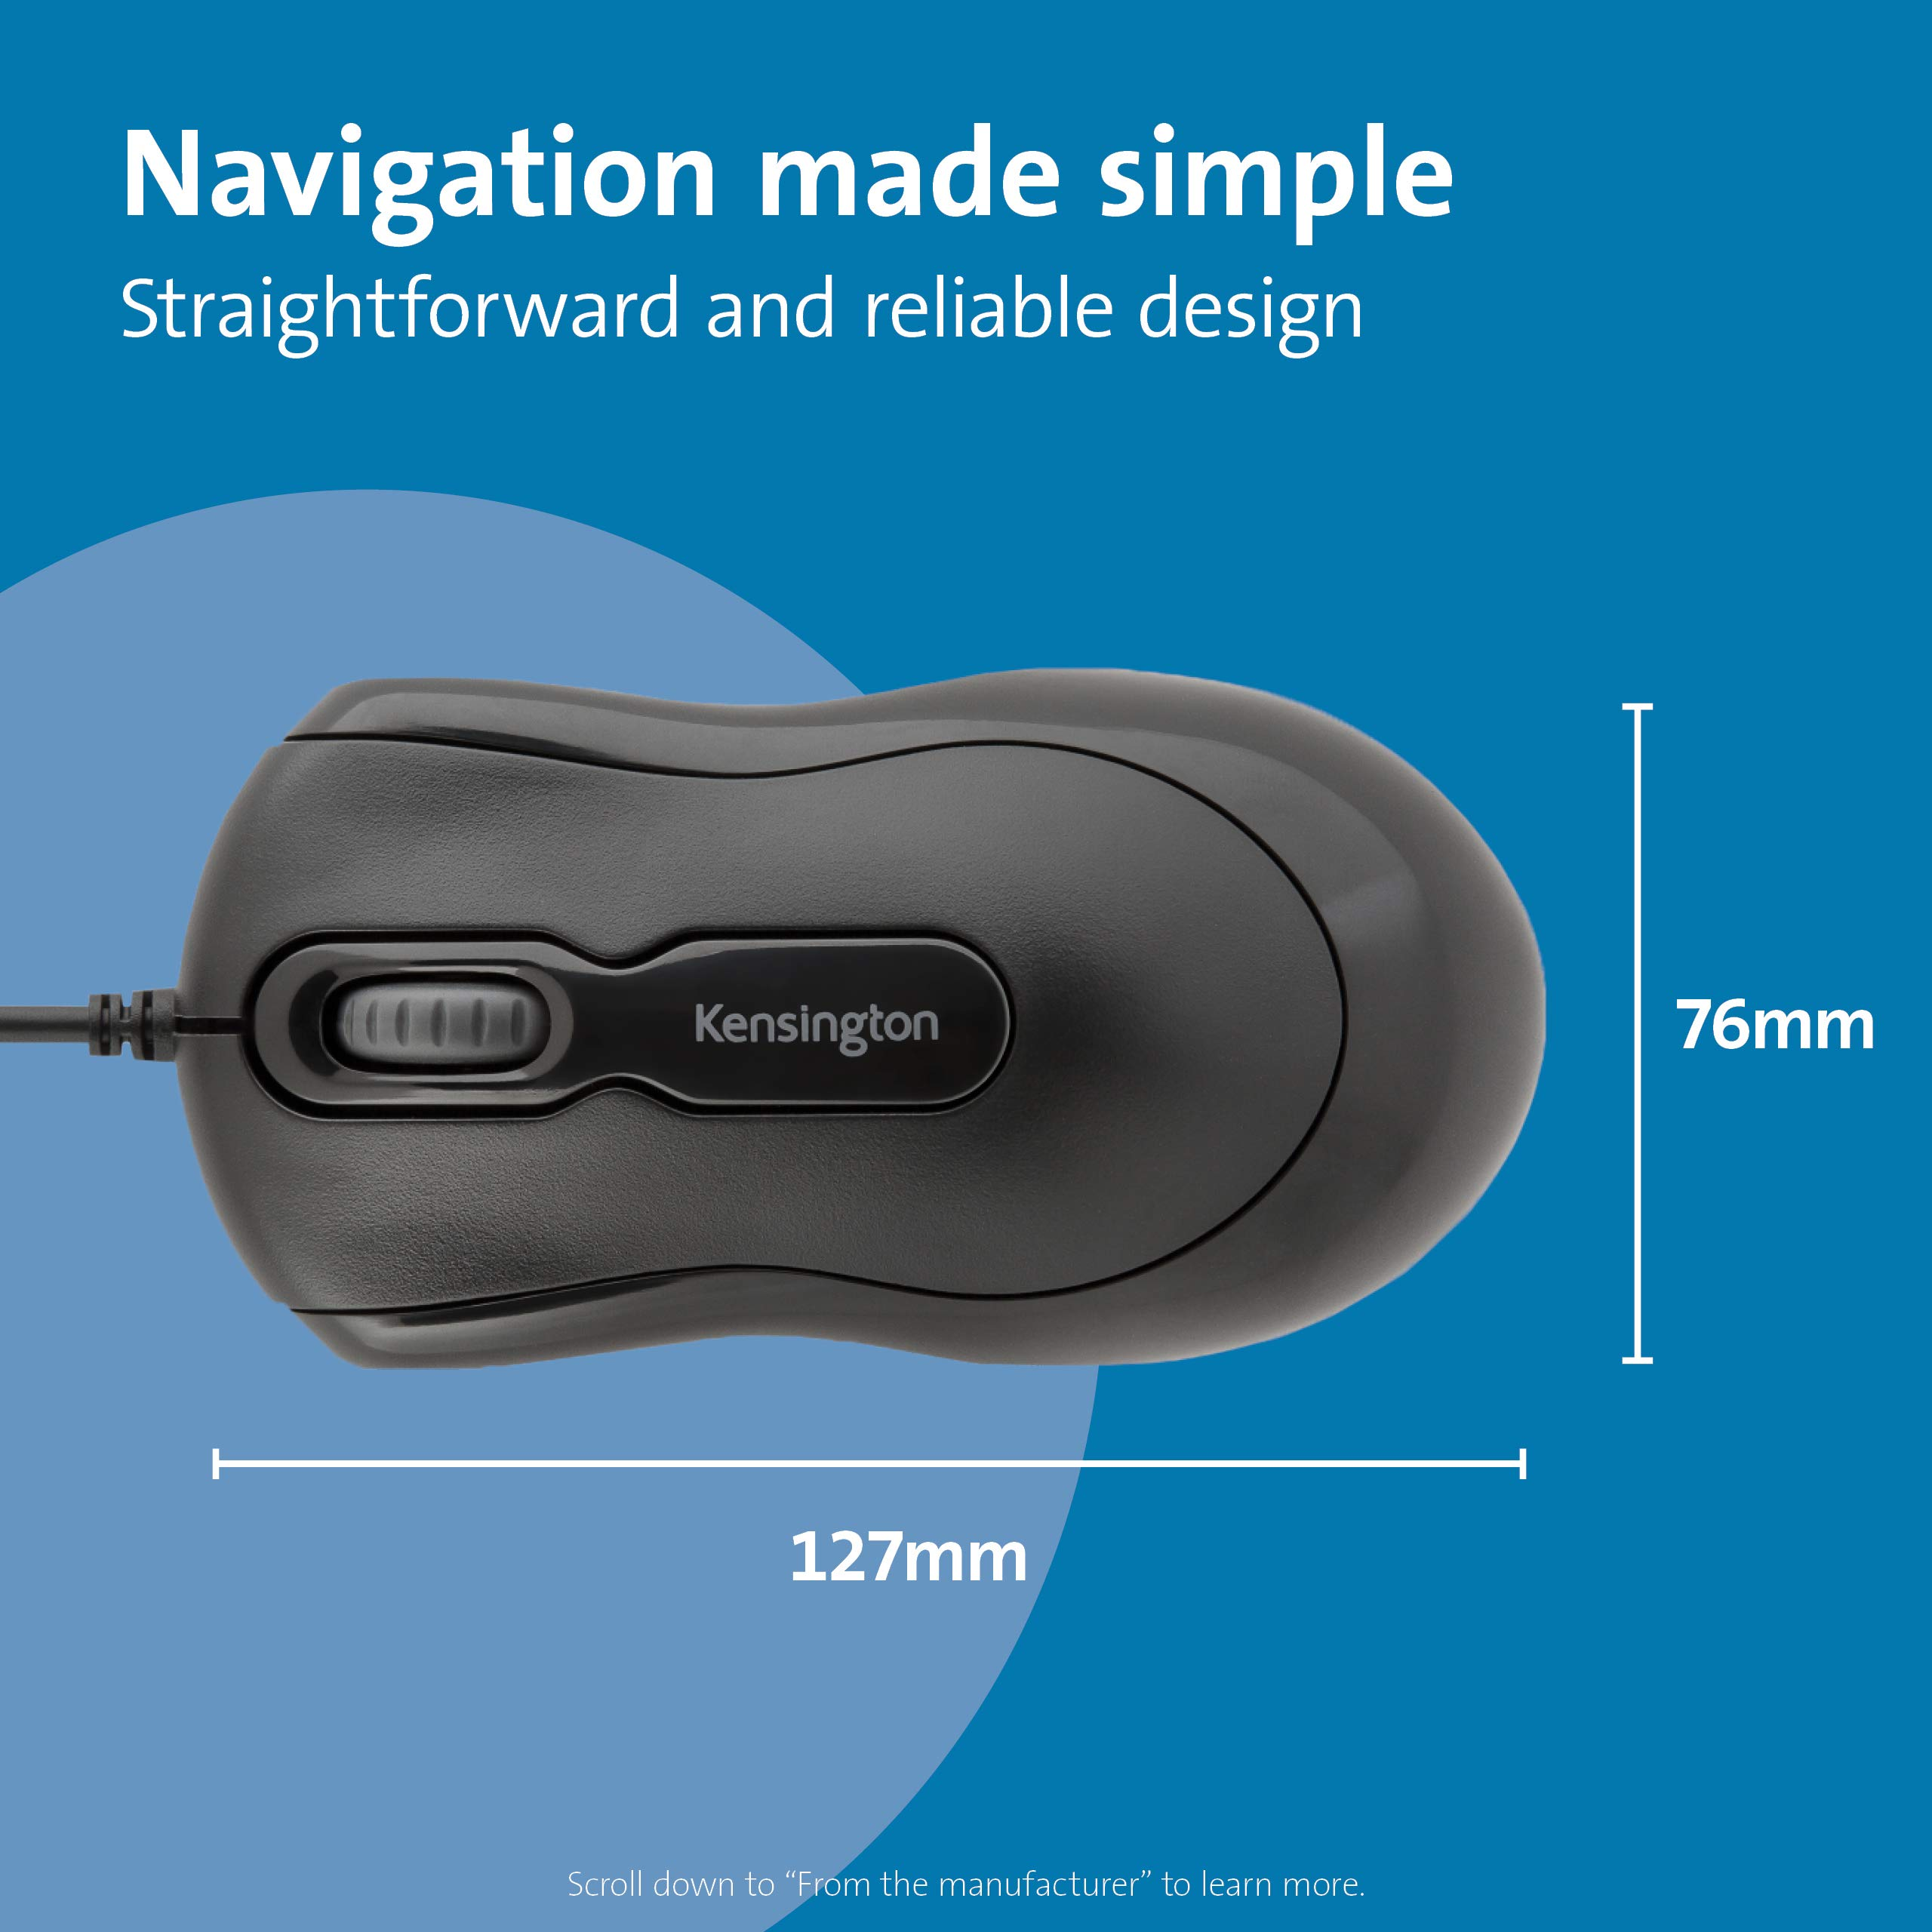 Kensington Wired USB 3.0 Mouse - Mouse-in-a-Box Wired Optical USB Desktop Mouse, Ambidextrous Design with Scroll Wheel Computer Mouse - Black (K72356EU)